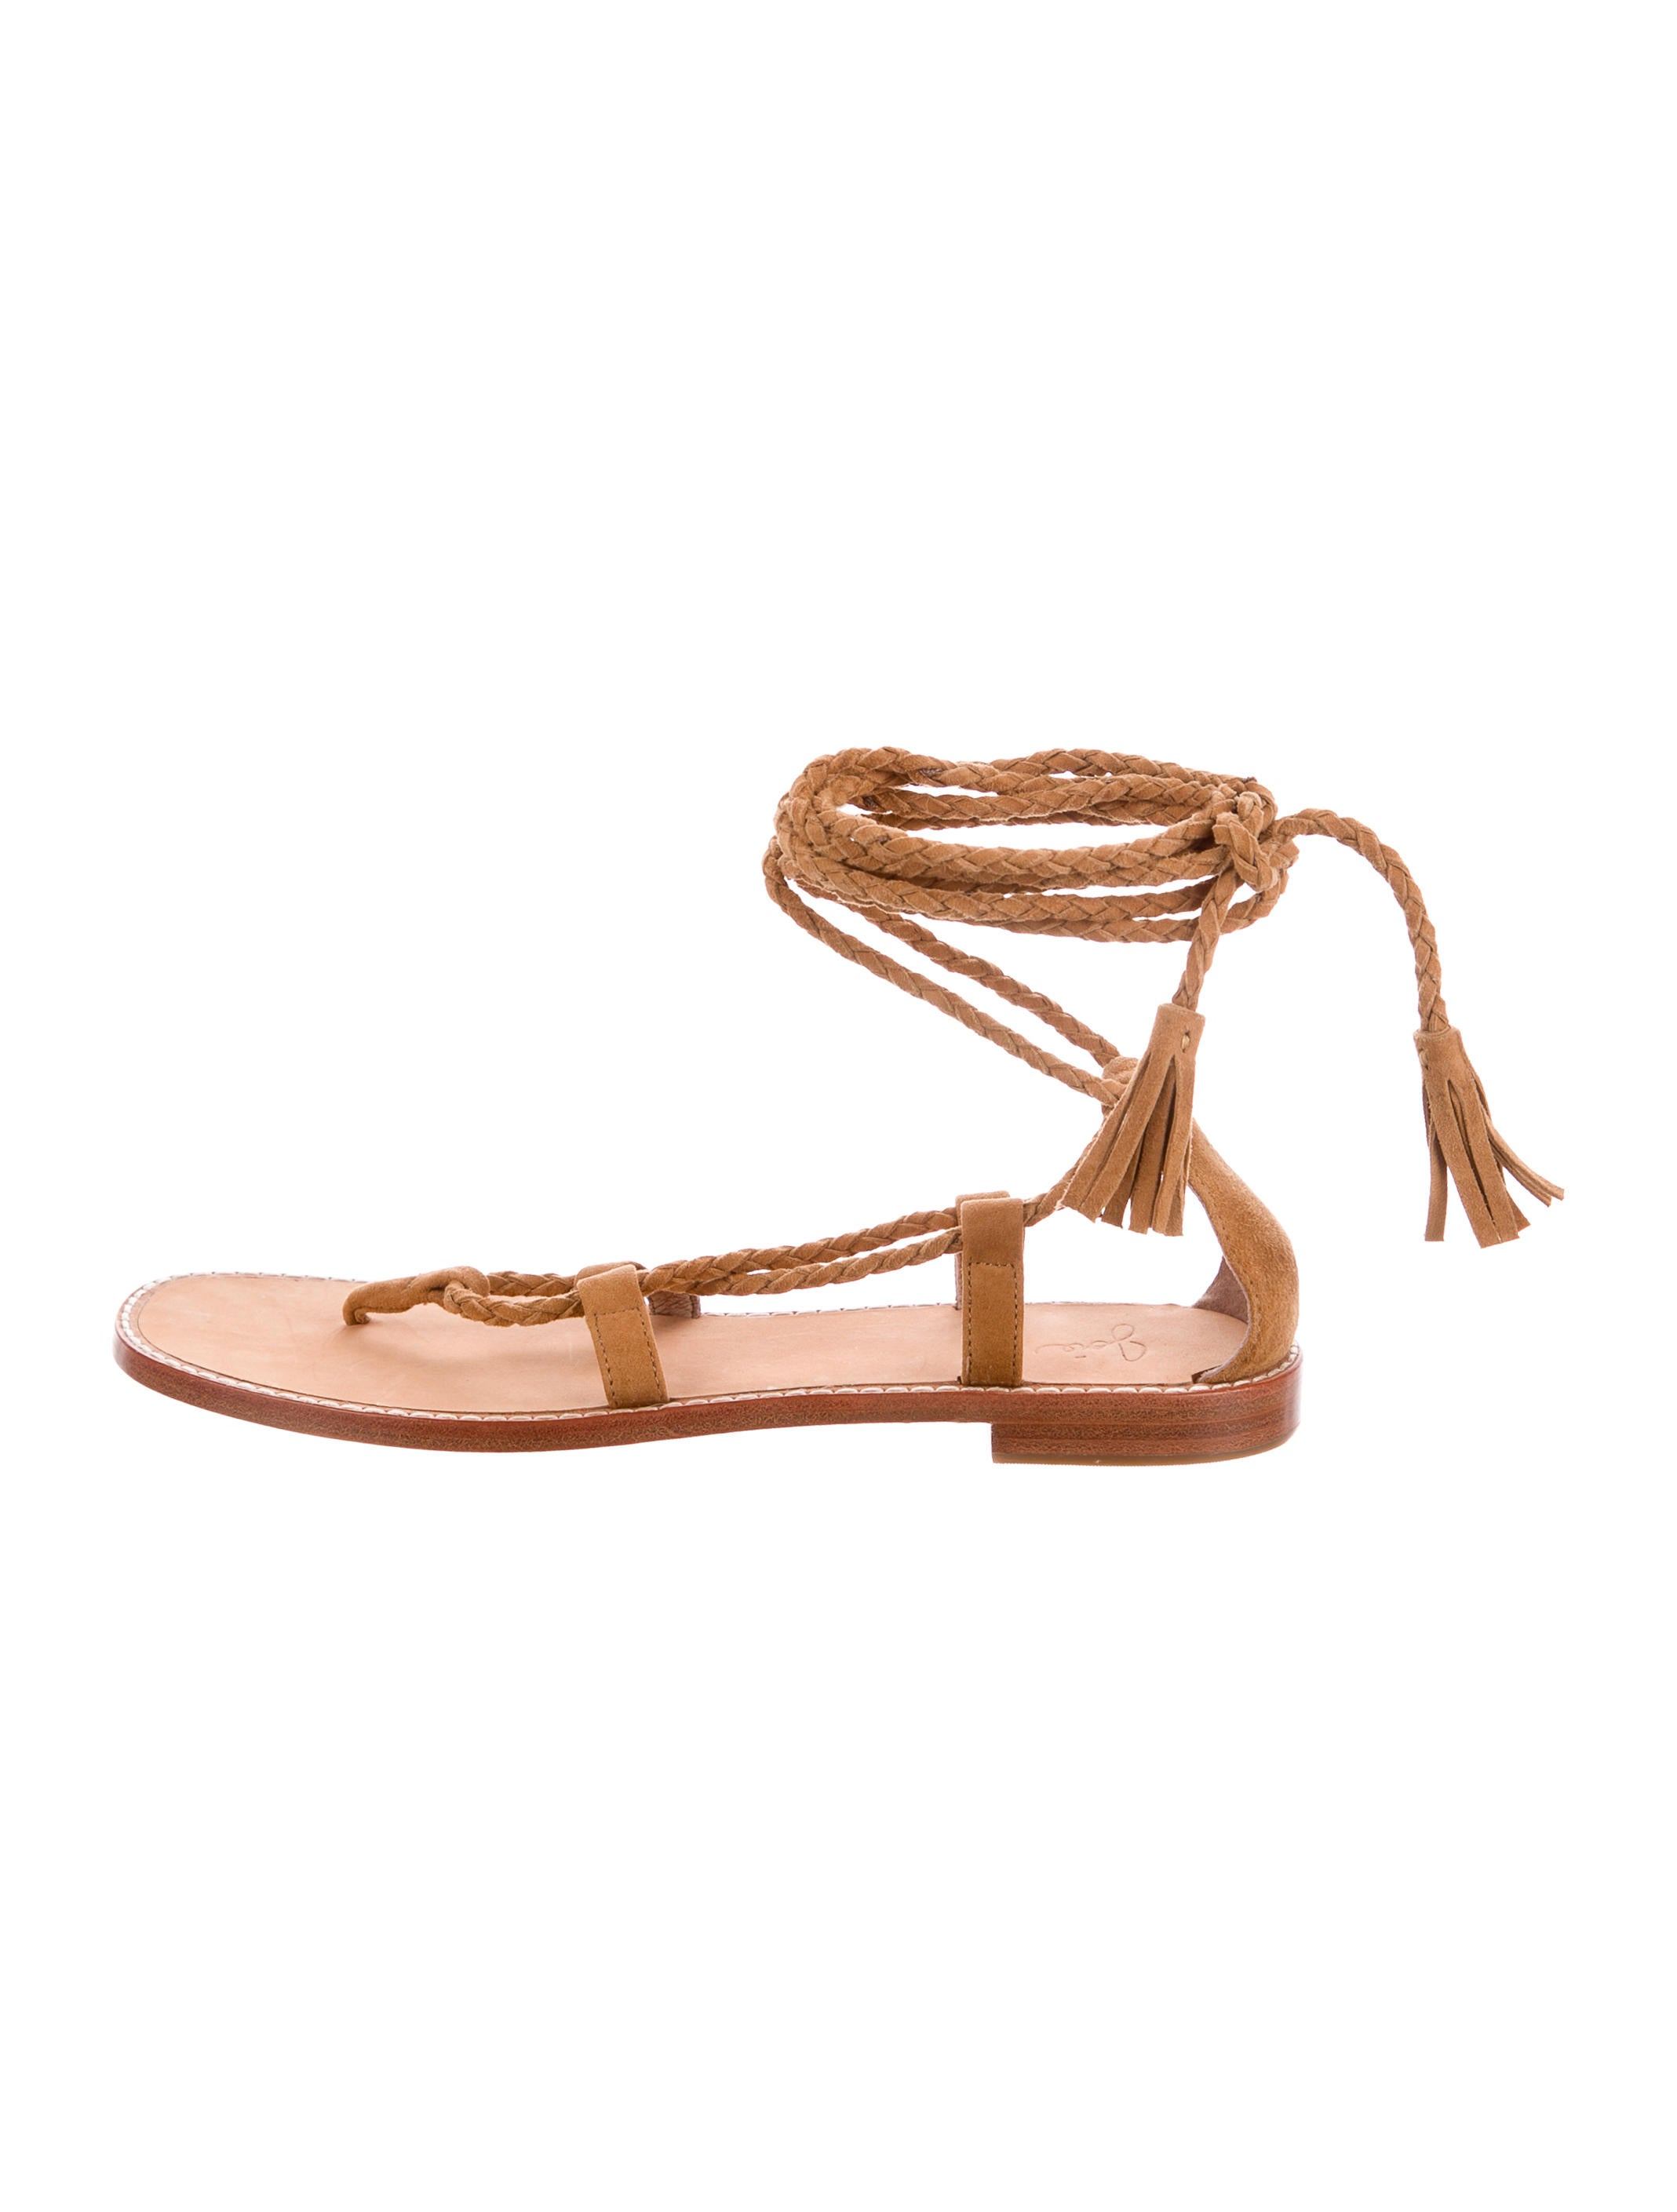 Joie Bailee Suede Sandals w/ Tags outlet from china largest supplier cheap price footaction cheap online nYNCkYk